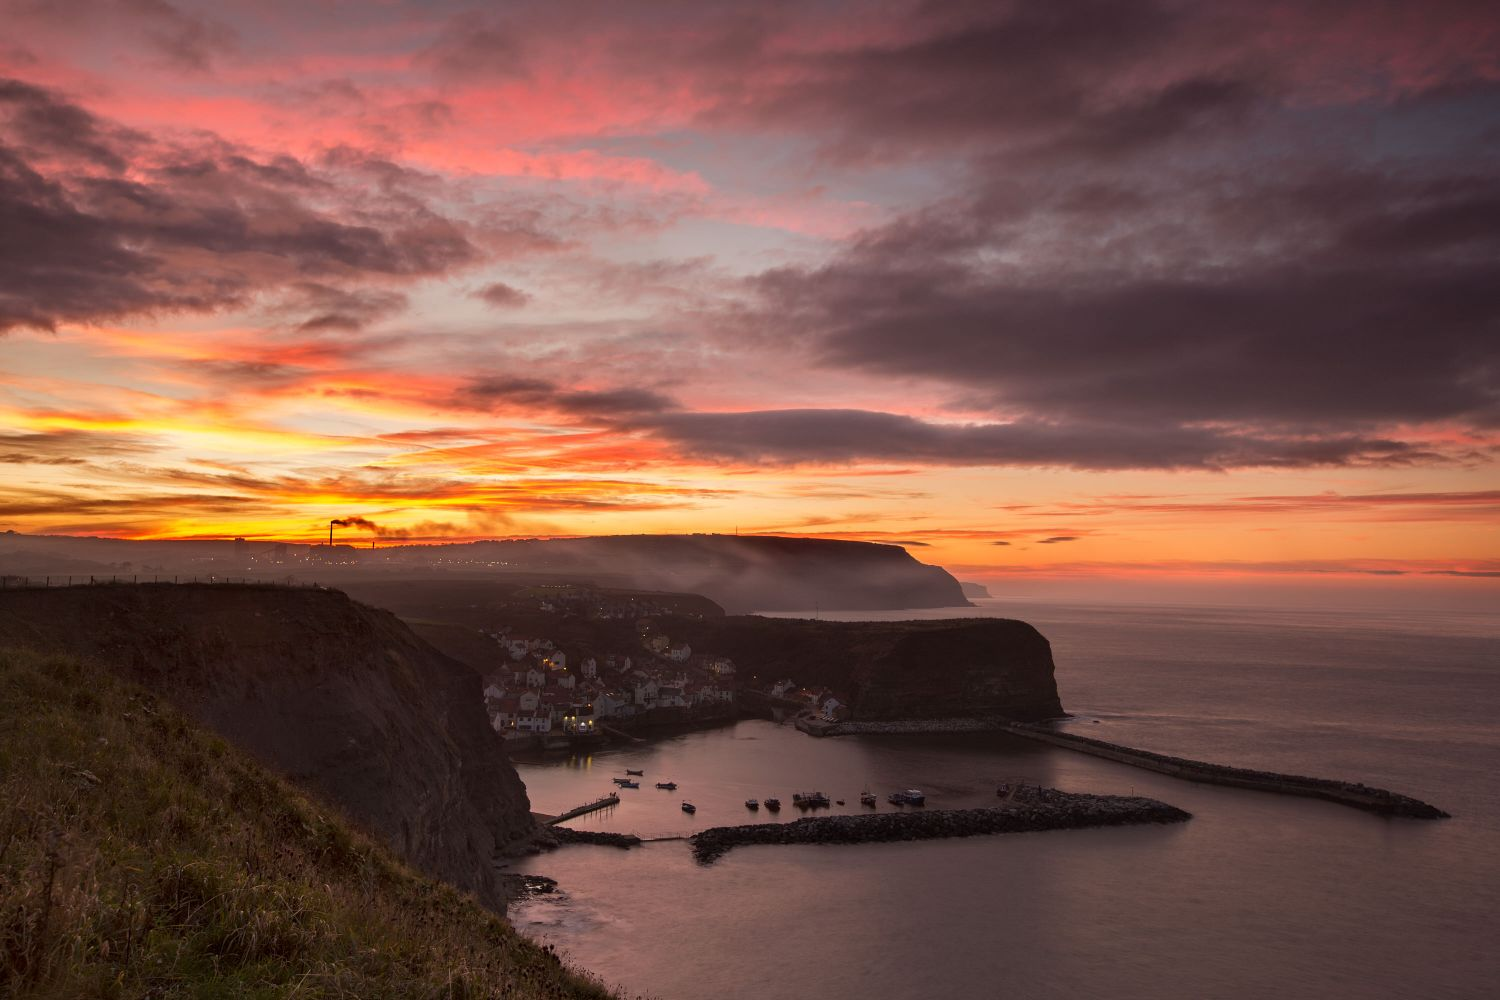 Sunset over Staithes, North Yorkshire